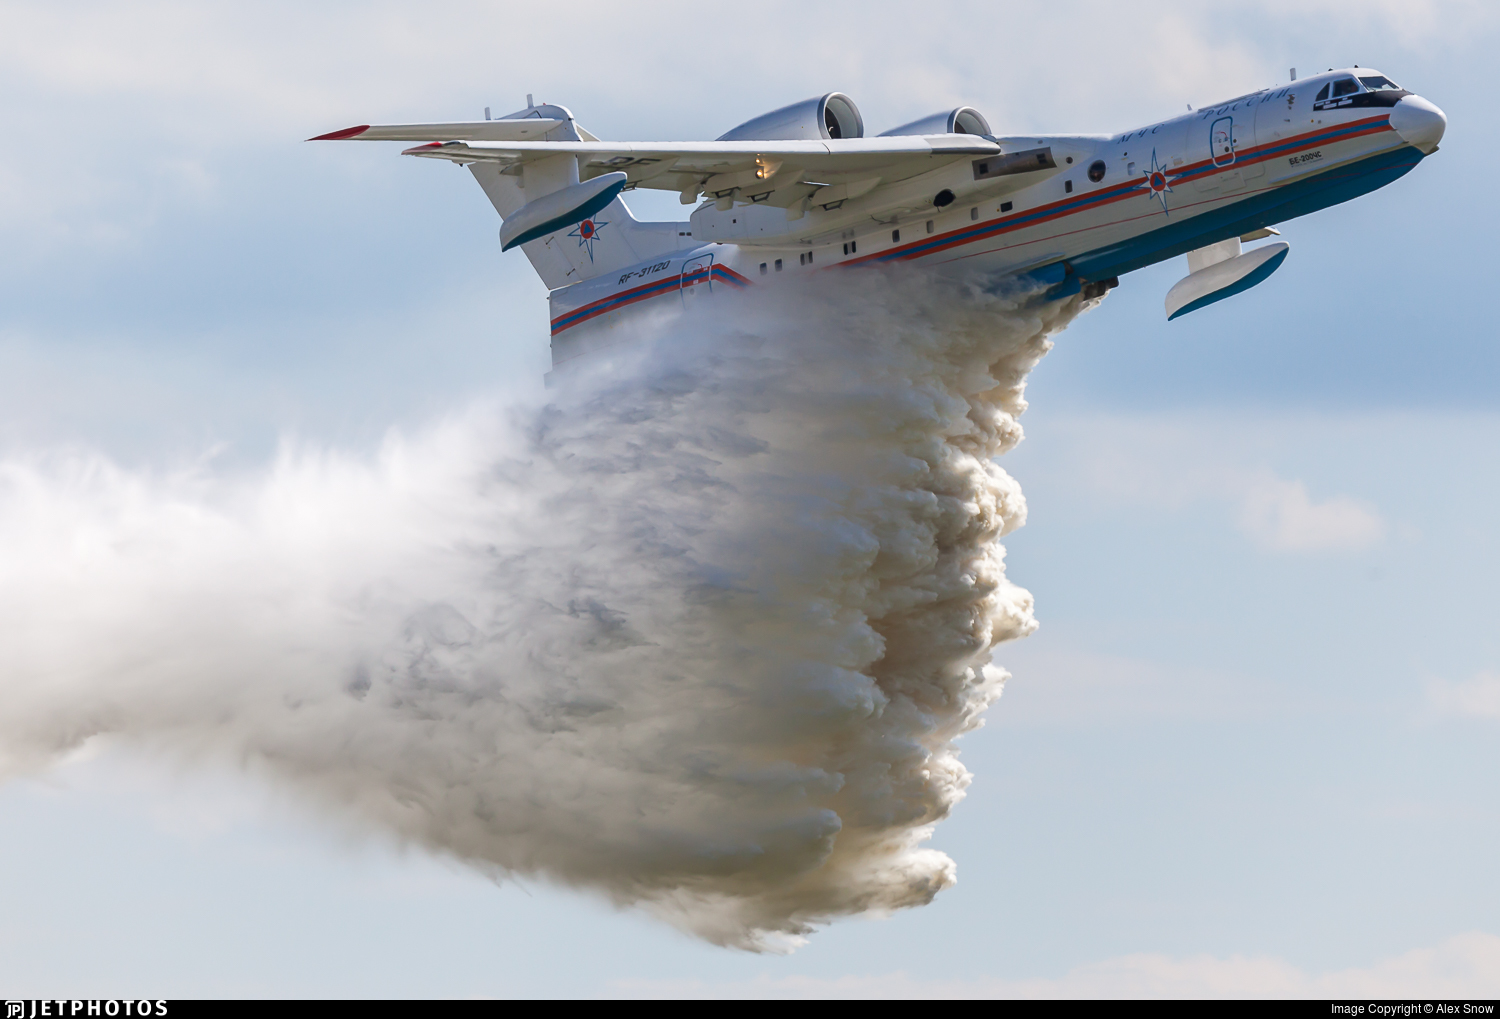 RF-31120 - Beriev Be-200ChS - Russia - Ministry for Emergency Situations (MChS)